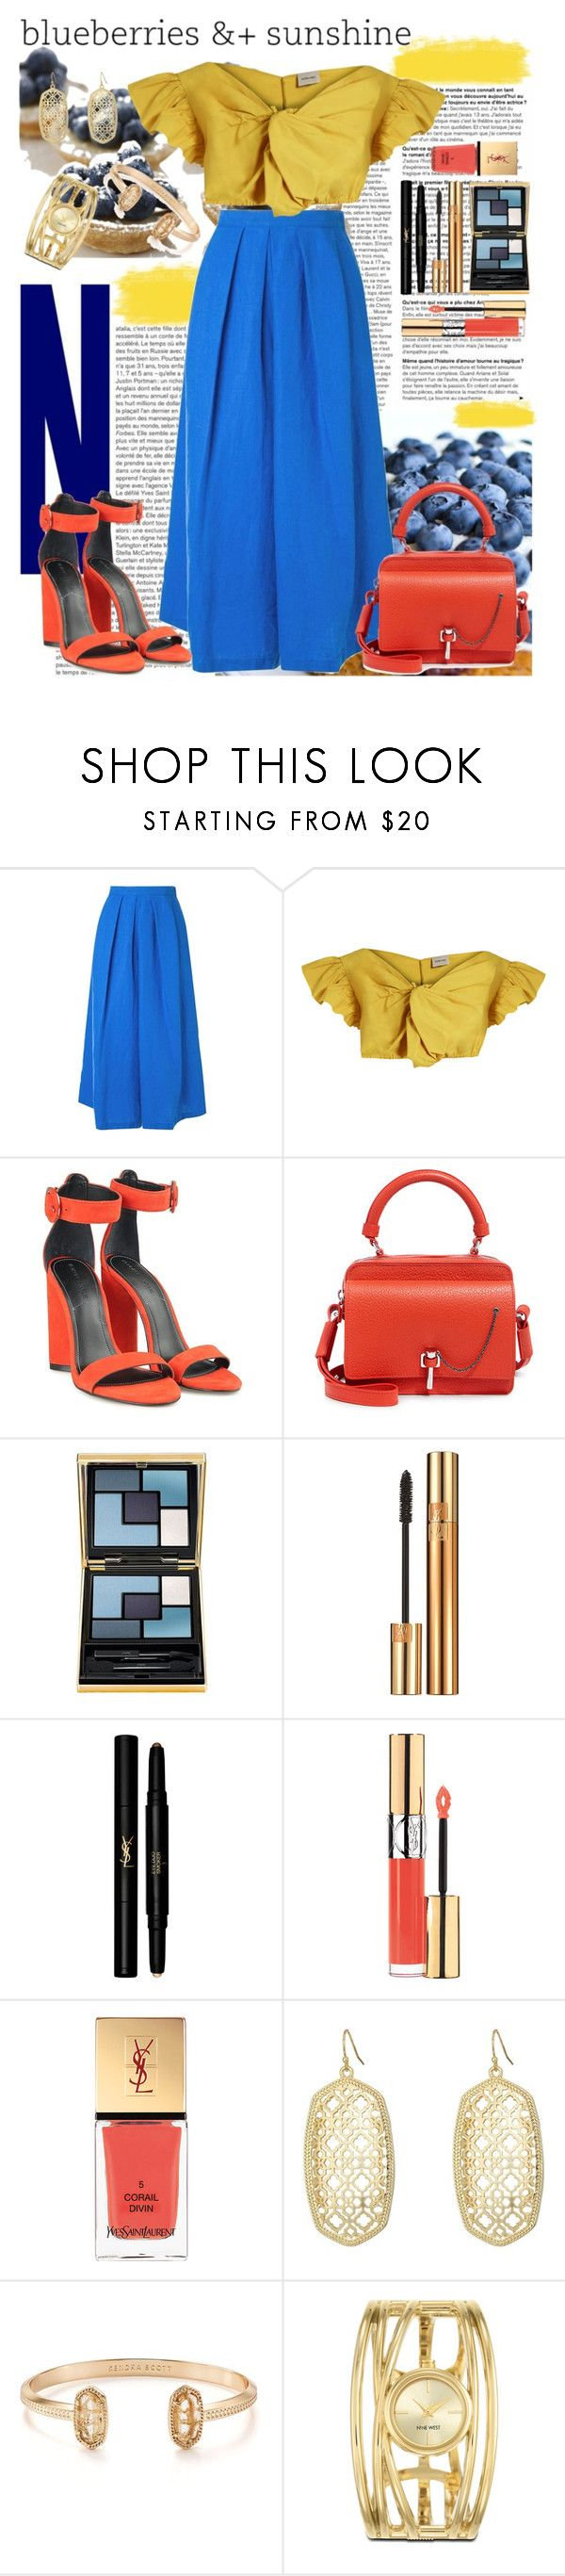 """""""2017 22 May: Berry Sunny"""" by e-trina ❤ liked on Polyvore featuring Rachel Comey, Kendall + Kylie, Carven, Yves Saint Laurent, Kendra Scott and Nine West"""